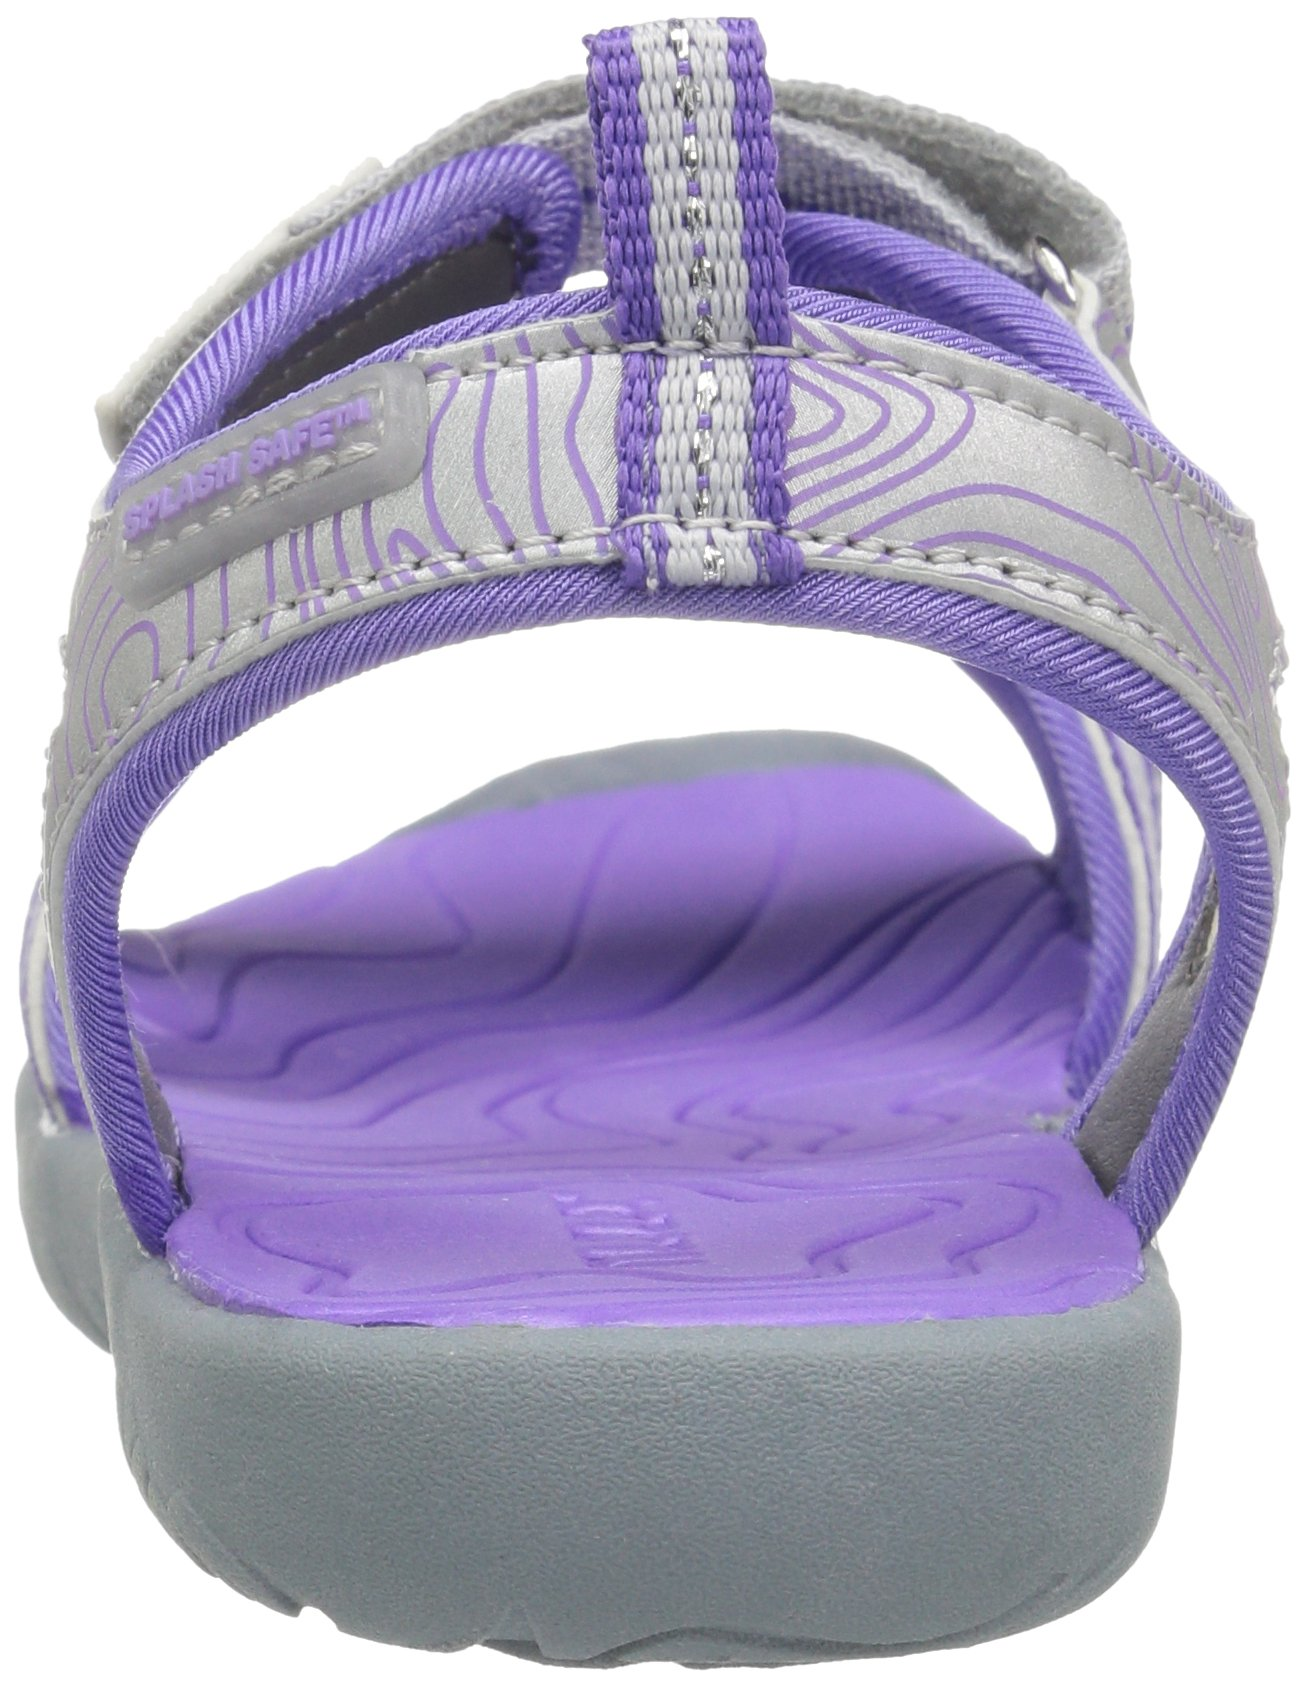 M.A.P. Lorna Girl's Outdoor Sandal, Silver/Purple, 2 M US Little Kid by M.A.P. (Image #2)